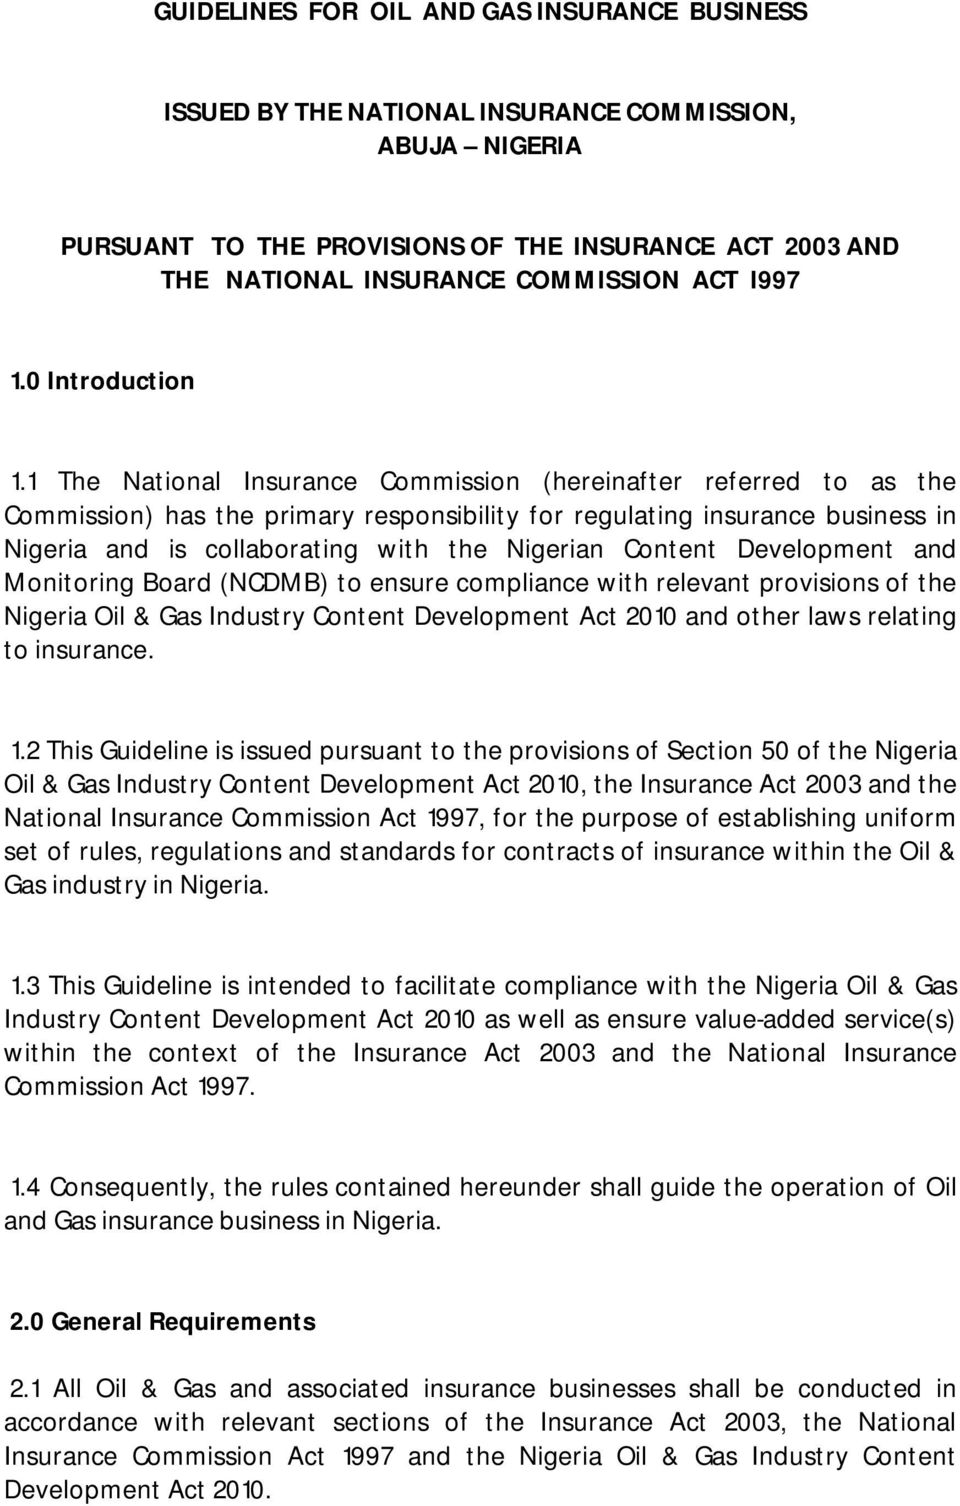 1 The National Insurance Commission (hereinafter referred to as the Commission) has the primary responsibility for regulating insurance business in Nigeria and is collaborating with the Nigerian